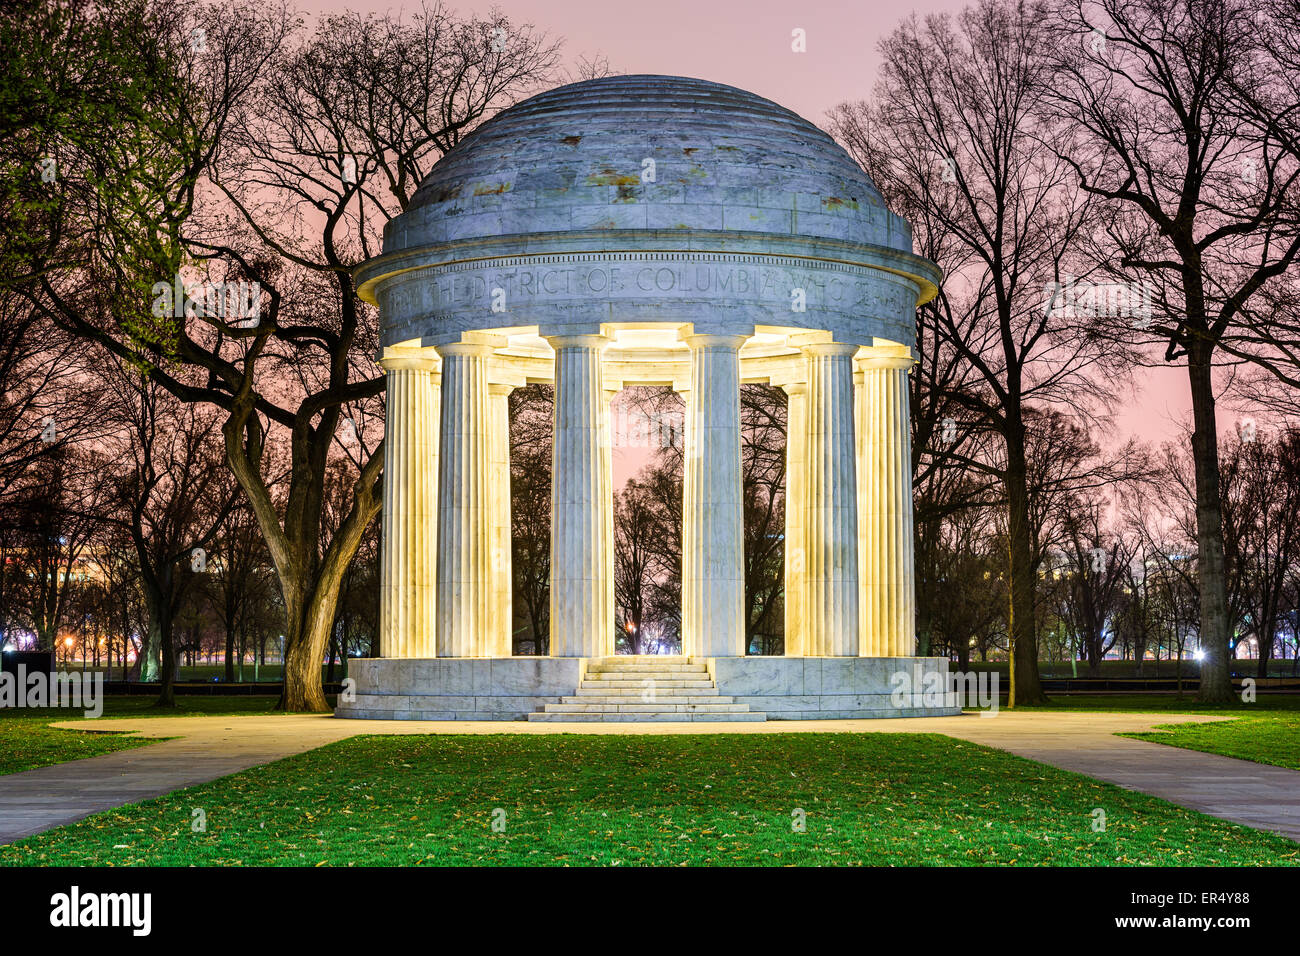 Washington, DC at the DC War Memorial, honoring citizens of the District of Columbia who served in World War I. - Stock Image